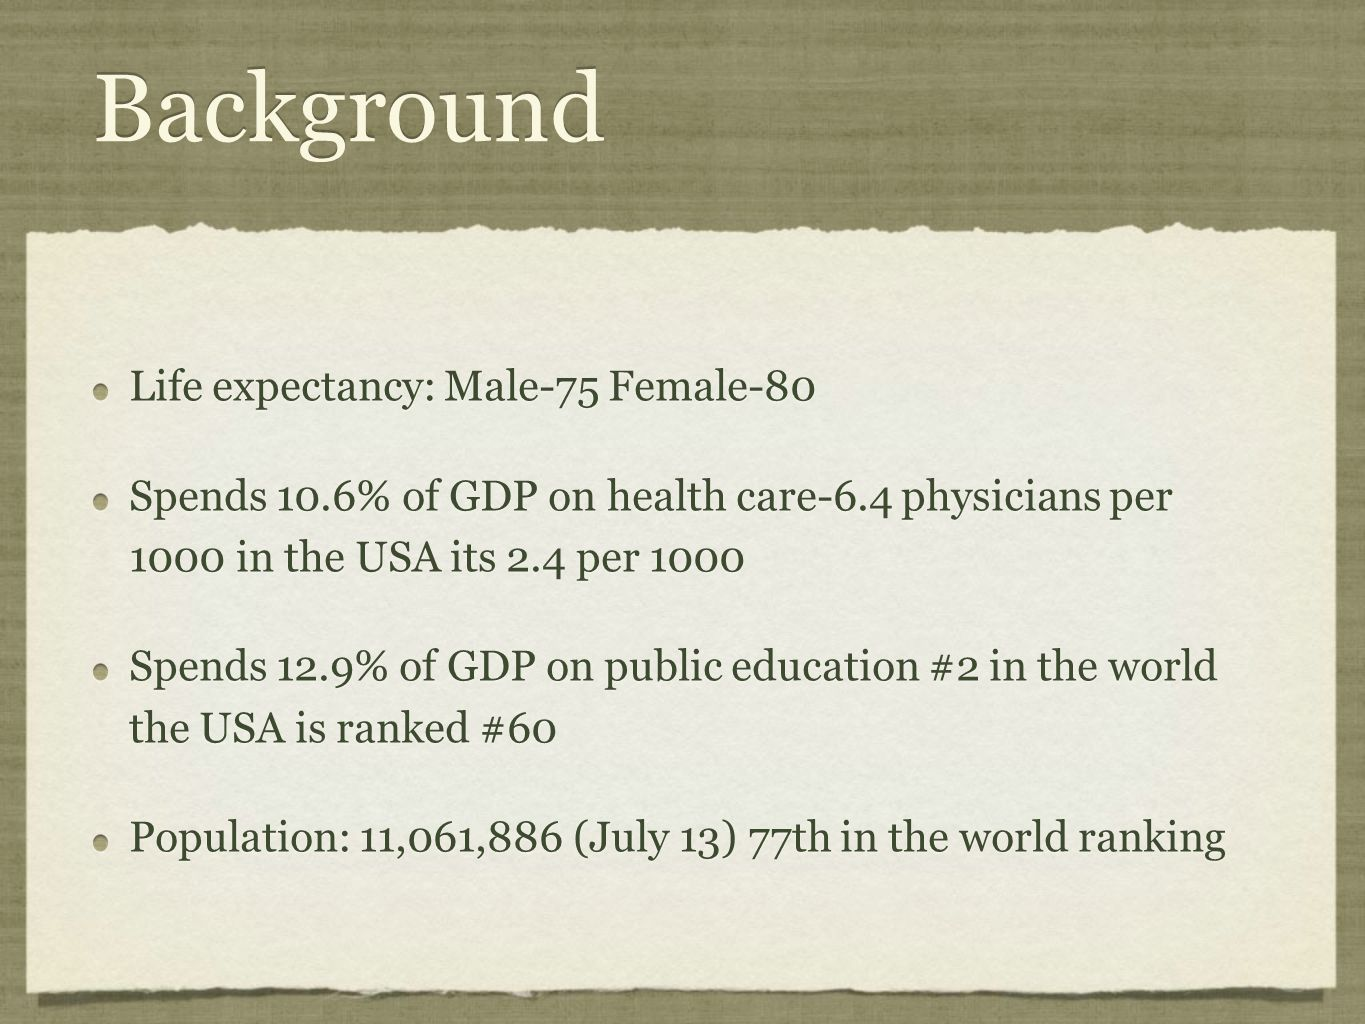 Background Life expectancy: Male-75 Female-80 Spends 10.6% of GDP on health care-6.4 physicians per 1000 in the USA its 2.4 per 1000 Spends 12.9% of G